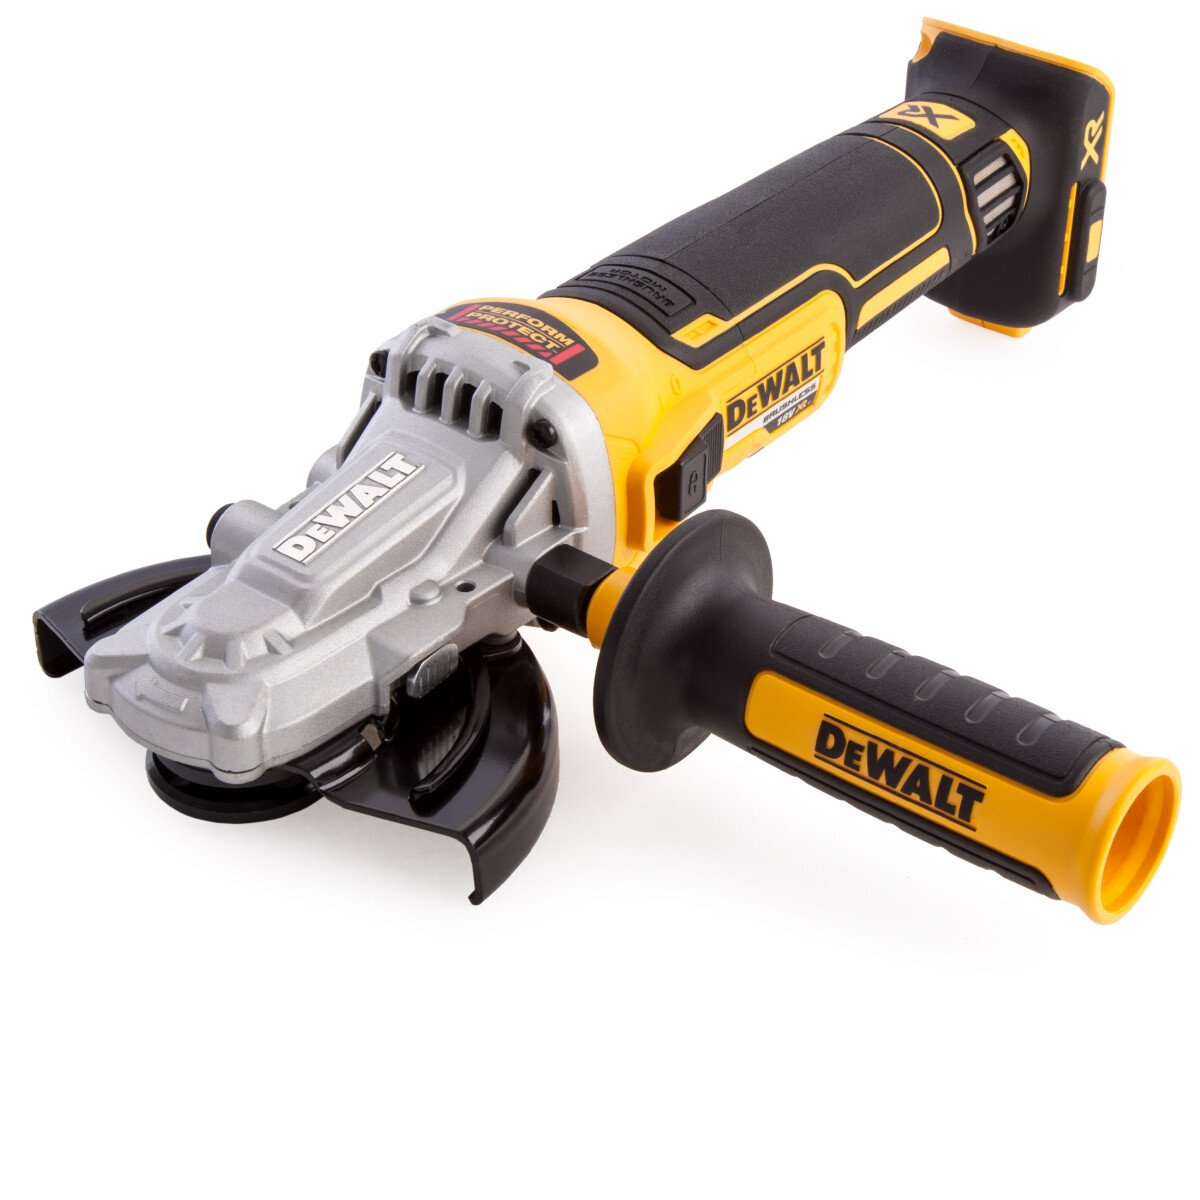 DeWalt DCG405FN-XJ Body Only 18V XR Brushless Flathead Angle Grinder 125mm